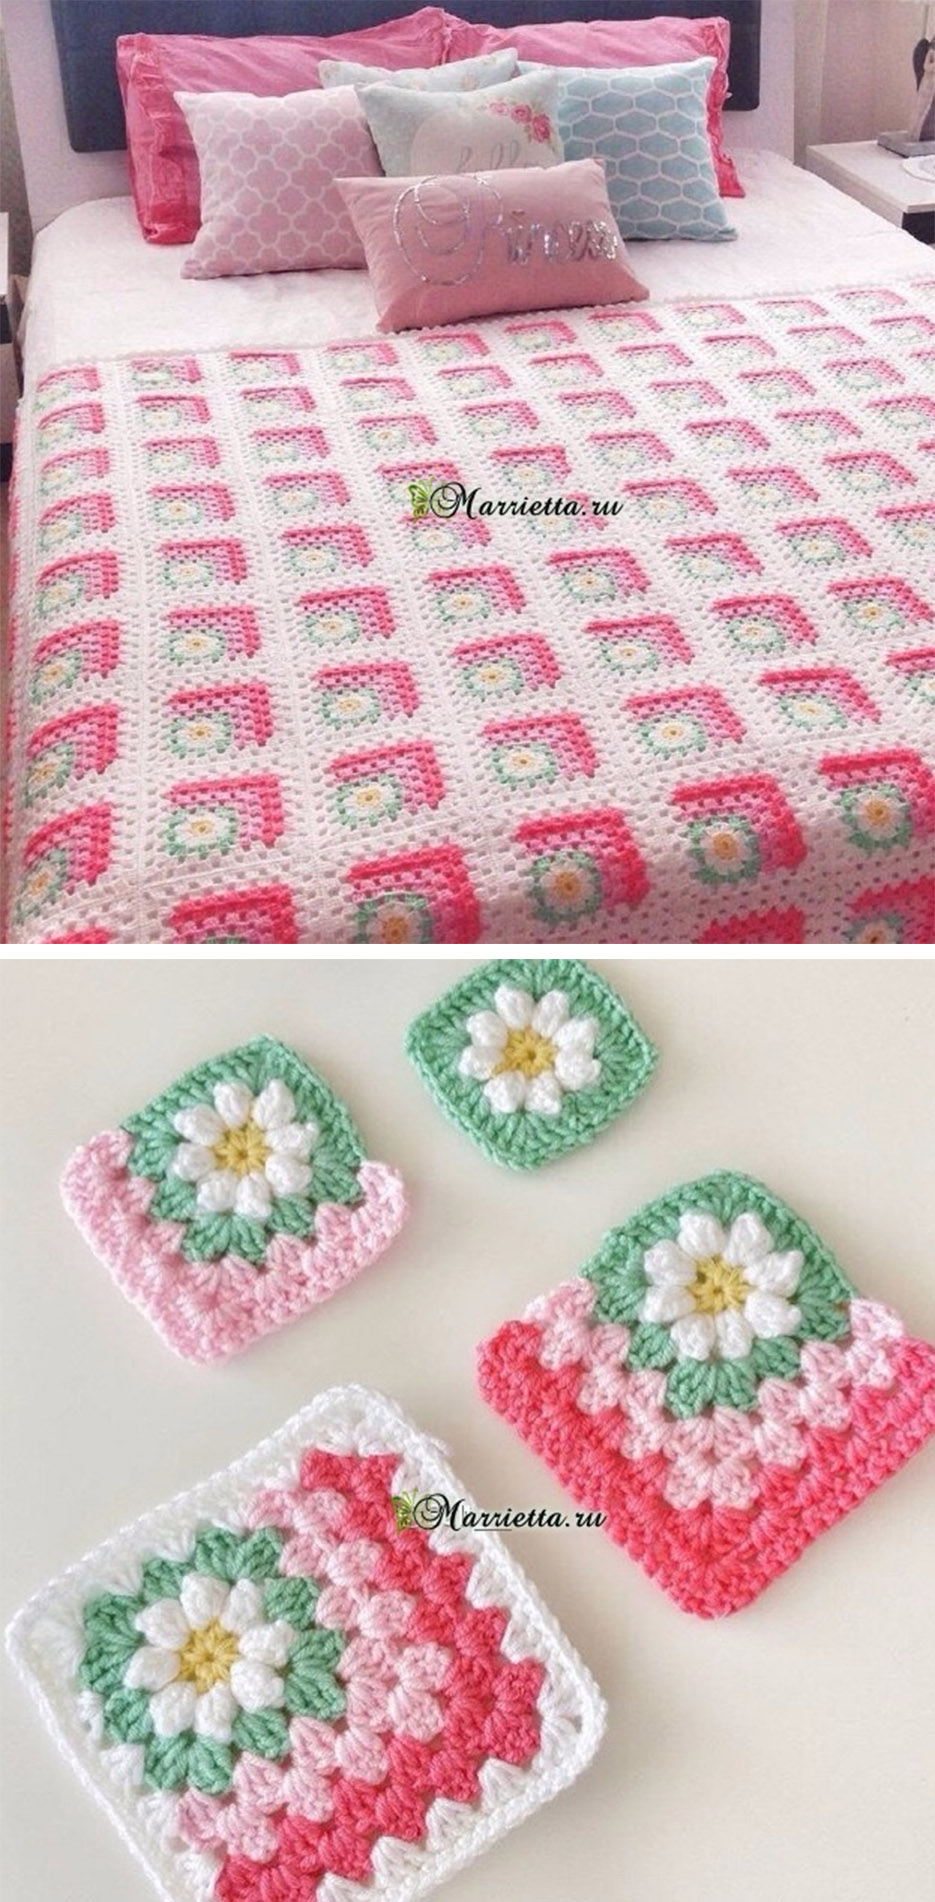 Flowers Crochet Granny Square Blanket Pattern Crochetbeja